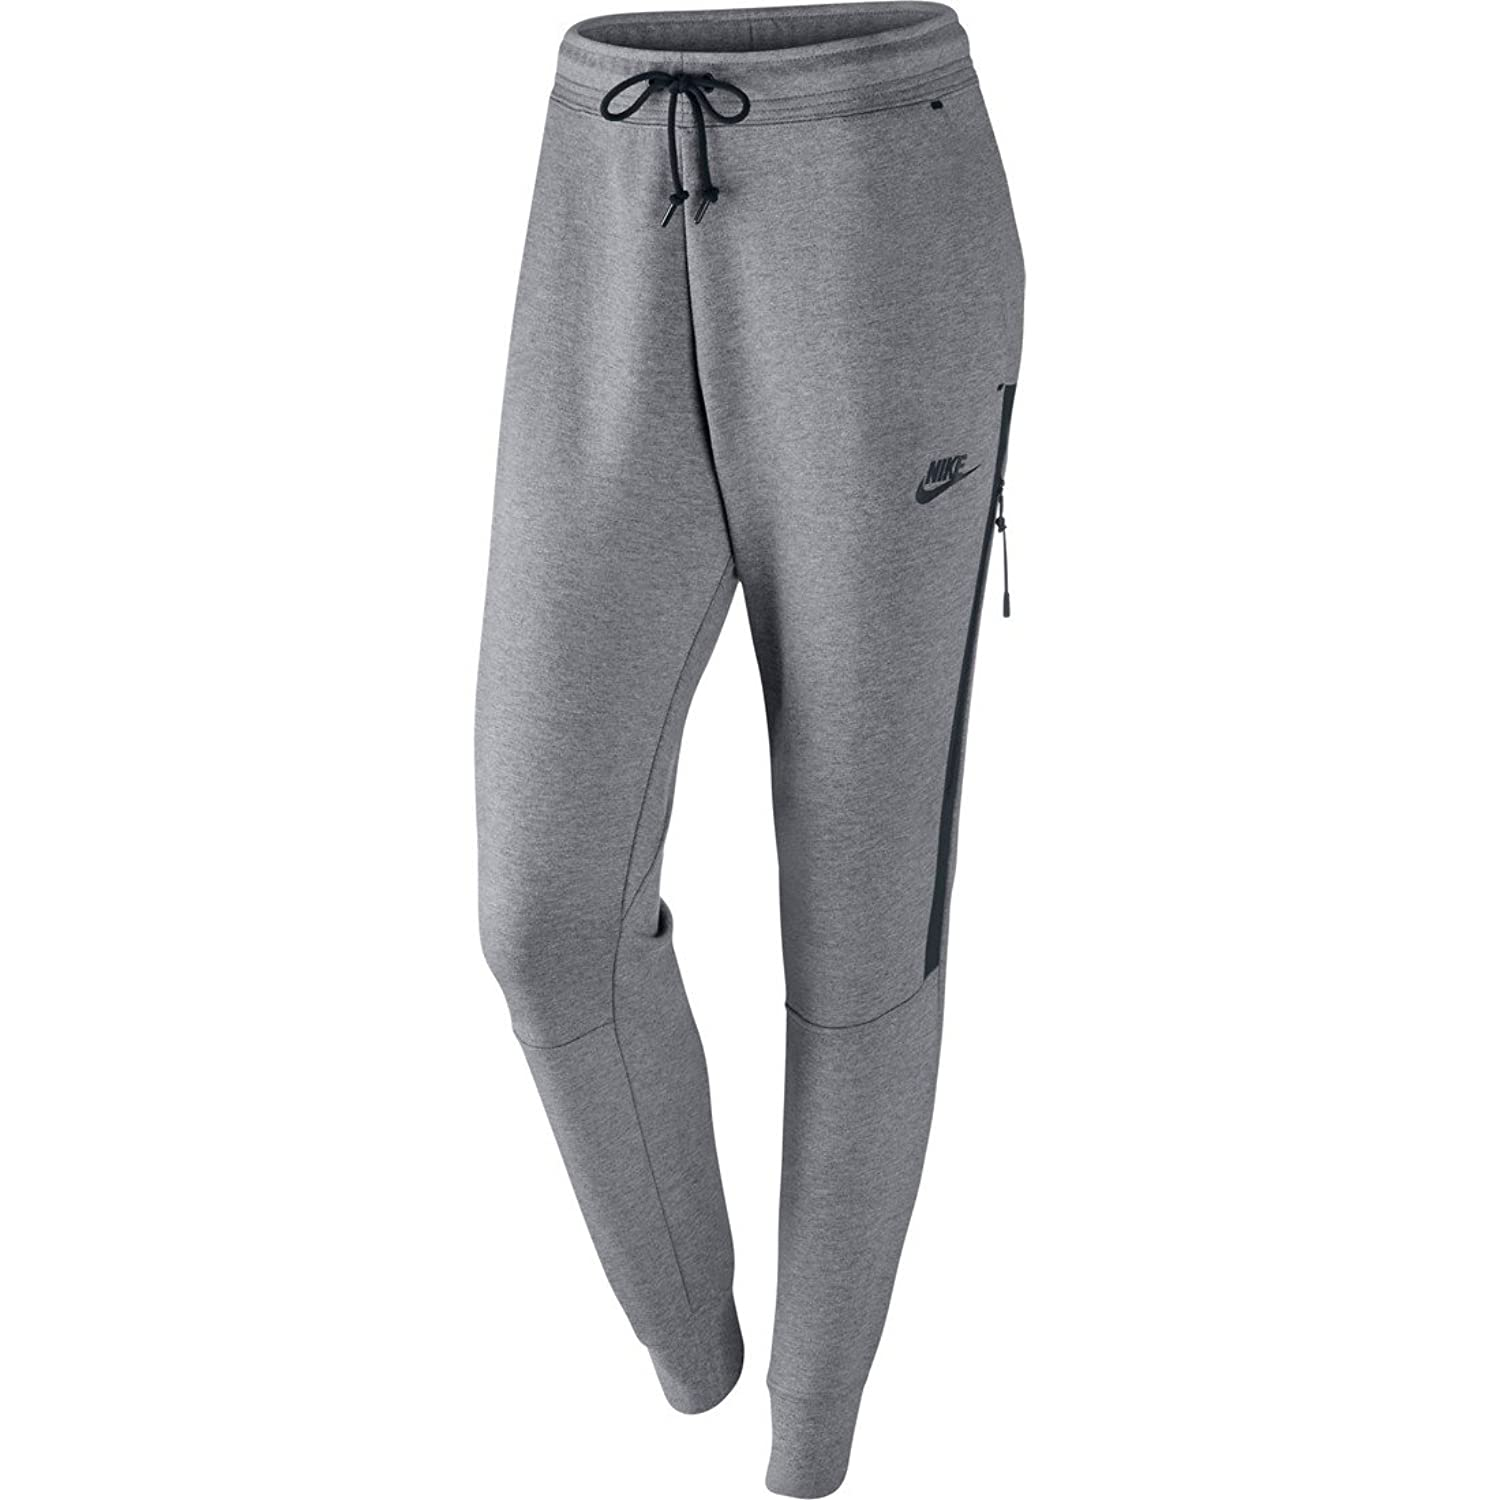 NIKE Women s Tech Fleece Pants at Amazon Women s Clothing store